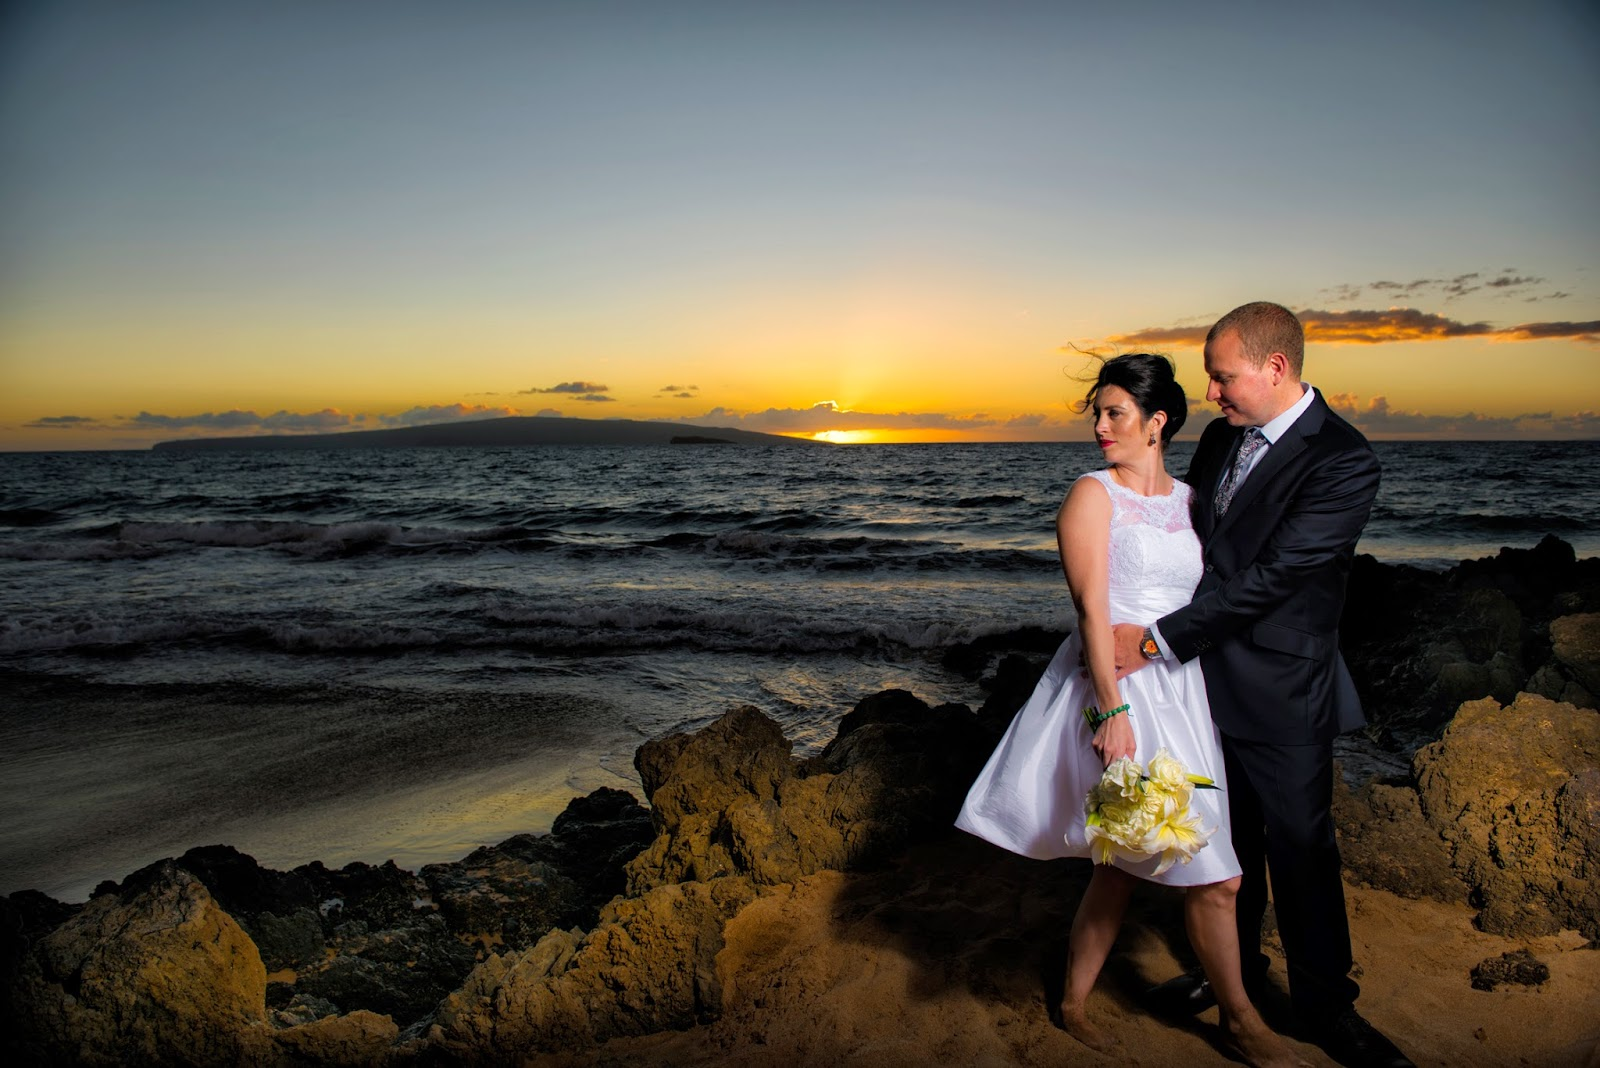 Maui Wedding Planners, Maui wedding photography, Maui Weddings, Maui Sunset Weddings